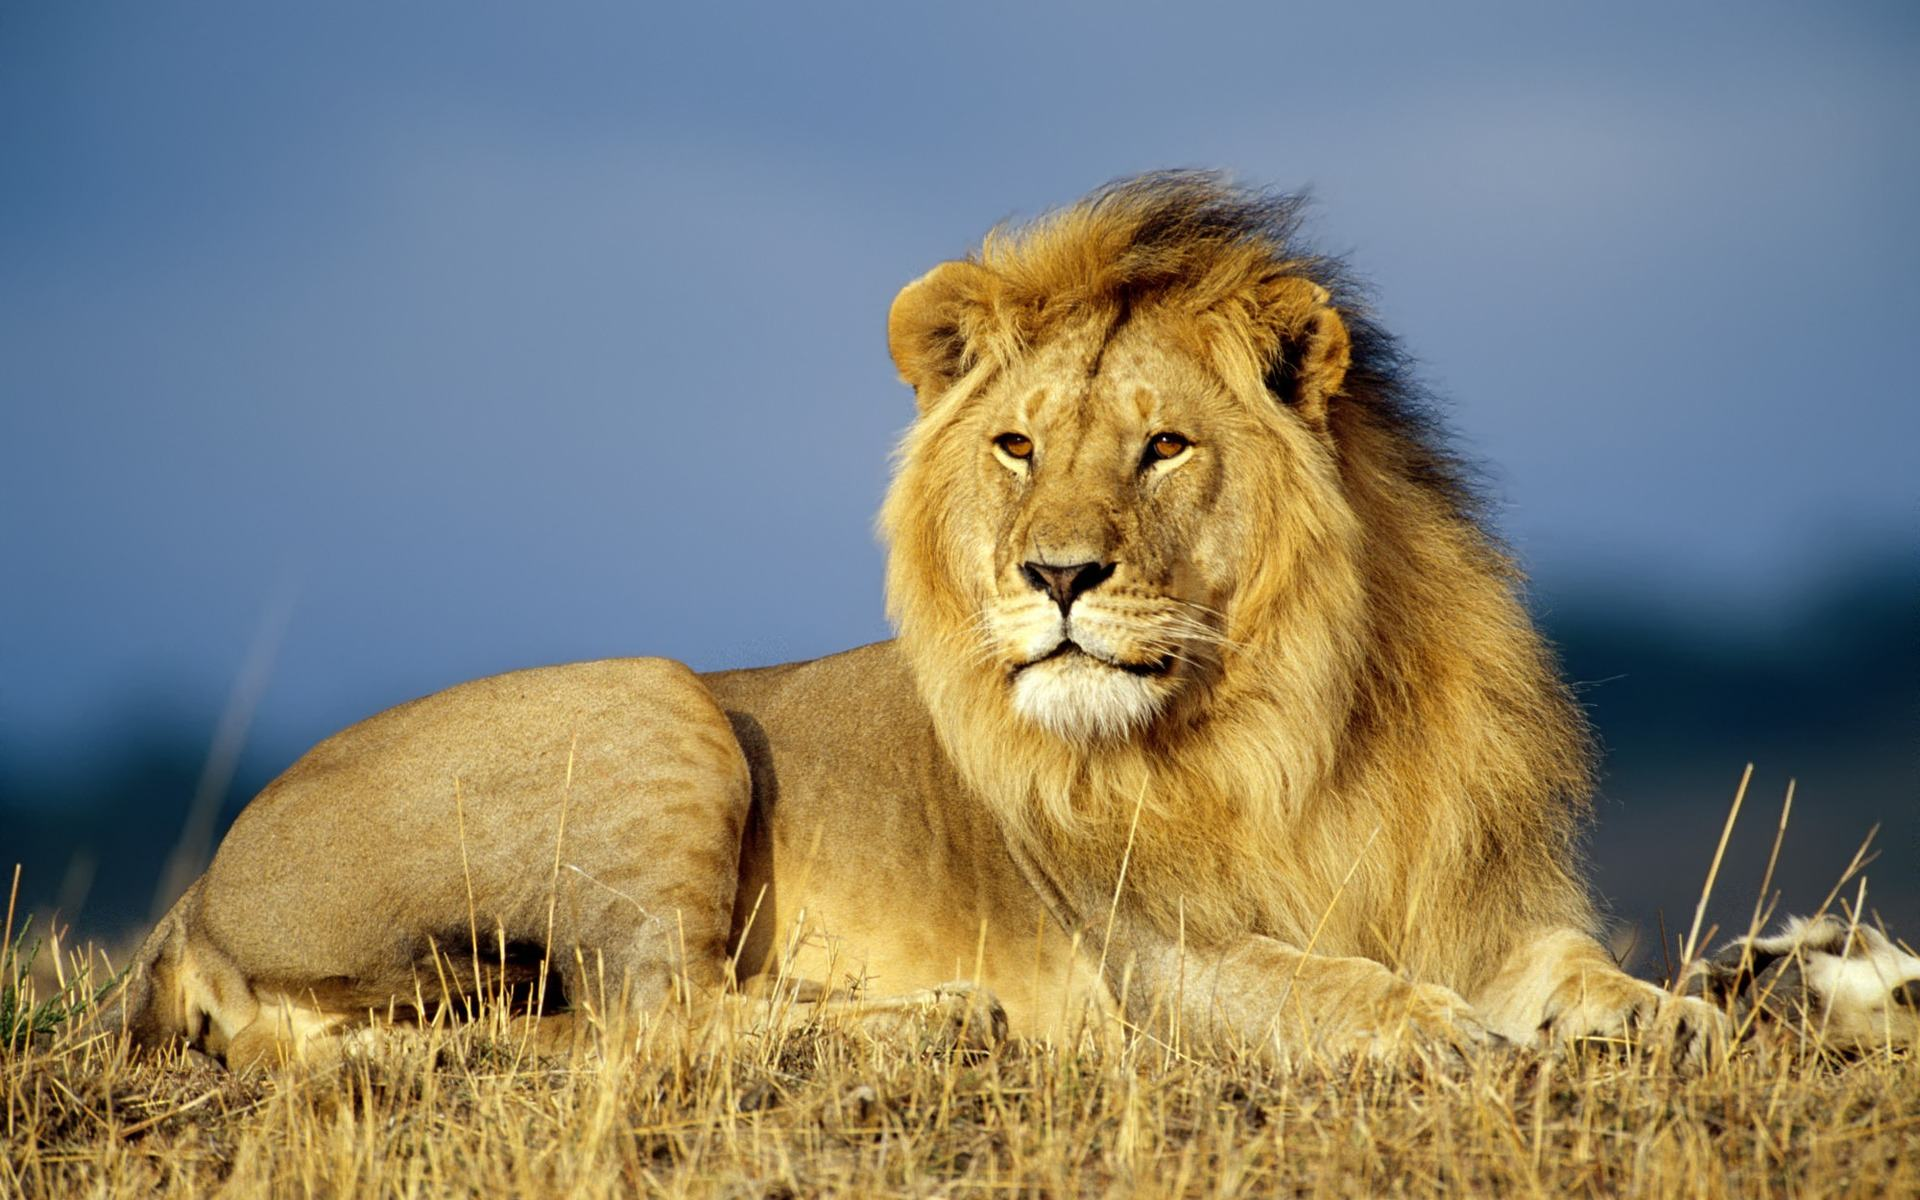 Download Wallpapers Backgrounds   Lions Animals Wallpapers 1920x1200